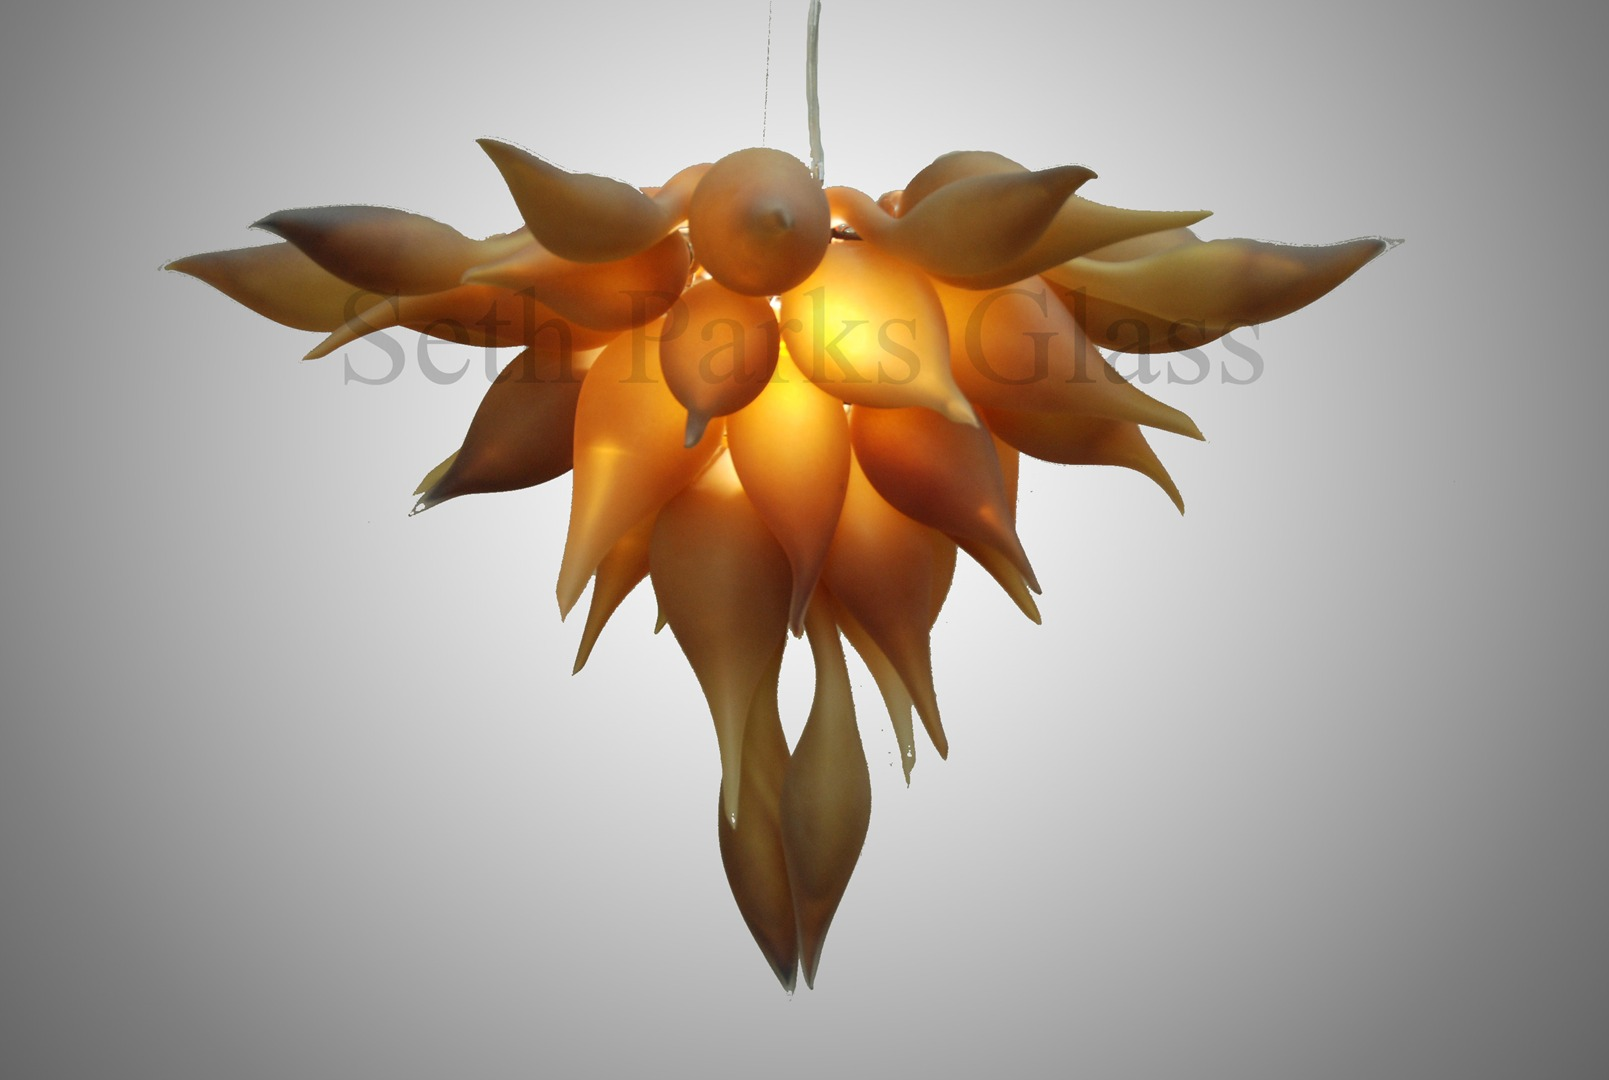 Blown glass light fixtures seth parks glass bella fiore chandelier starting at 3000 aloadofball Choice Image